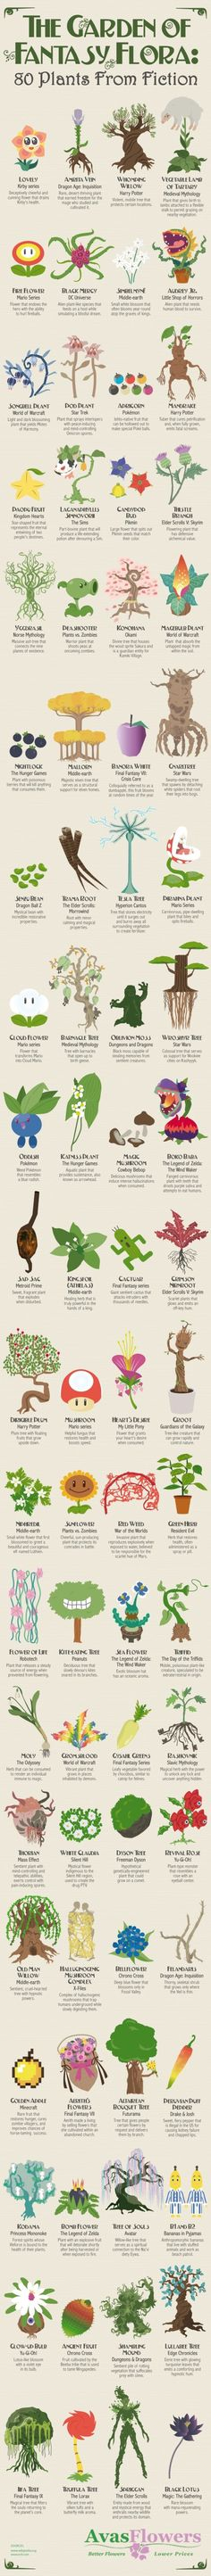 80 plants from fiction (infographic)